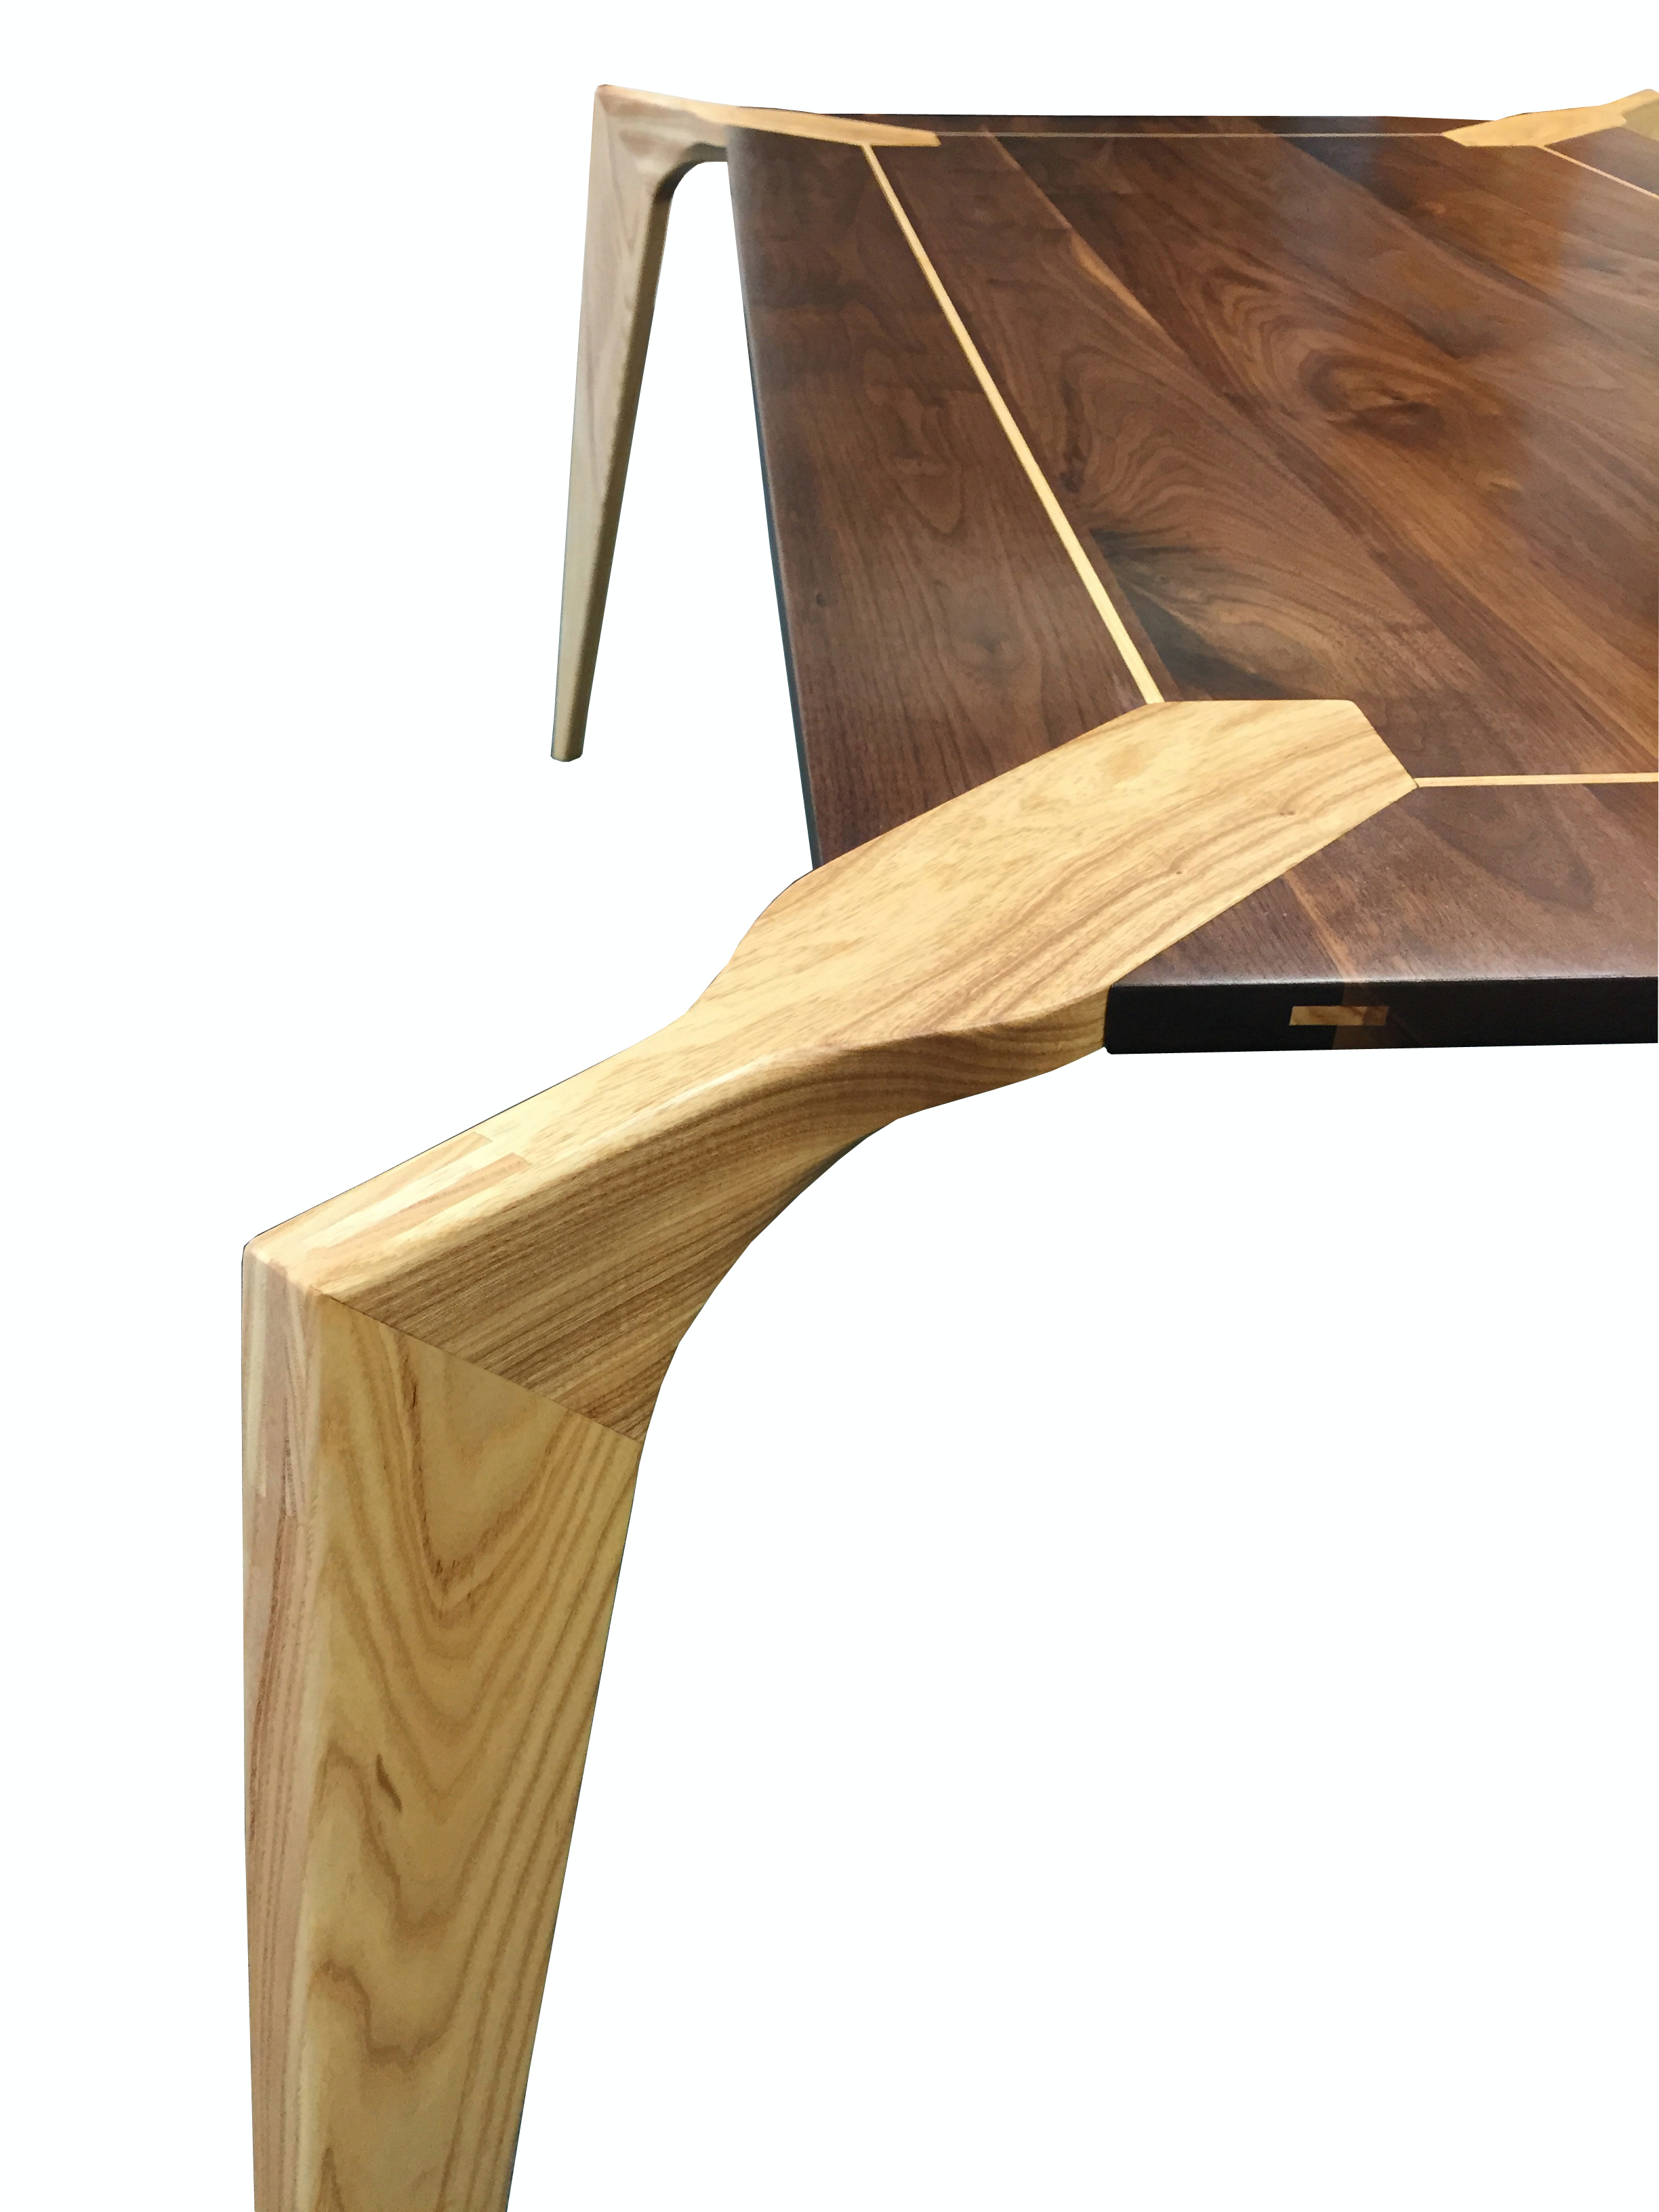 Kipp Table Leg Foreground_F.jpg